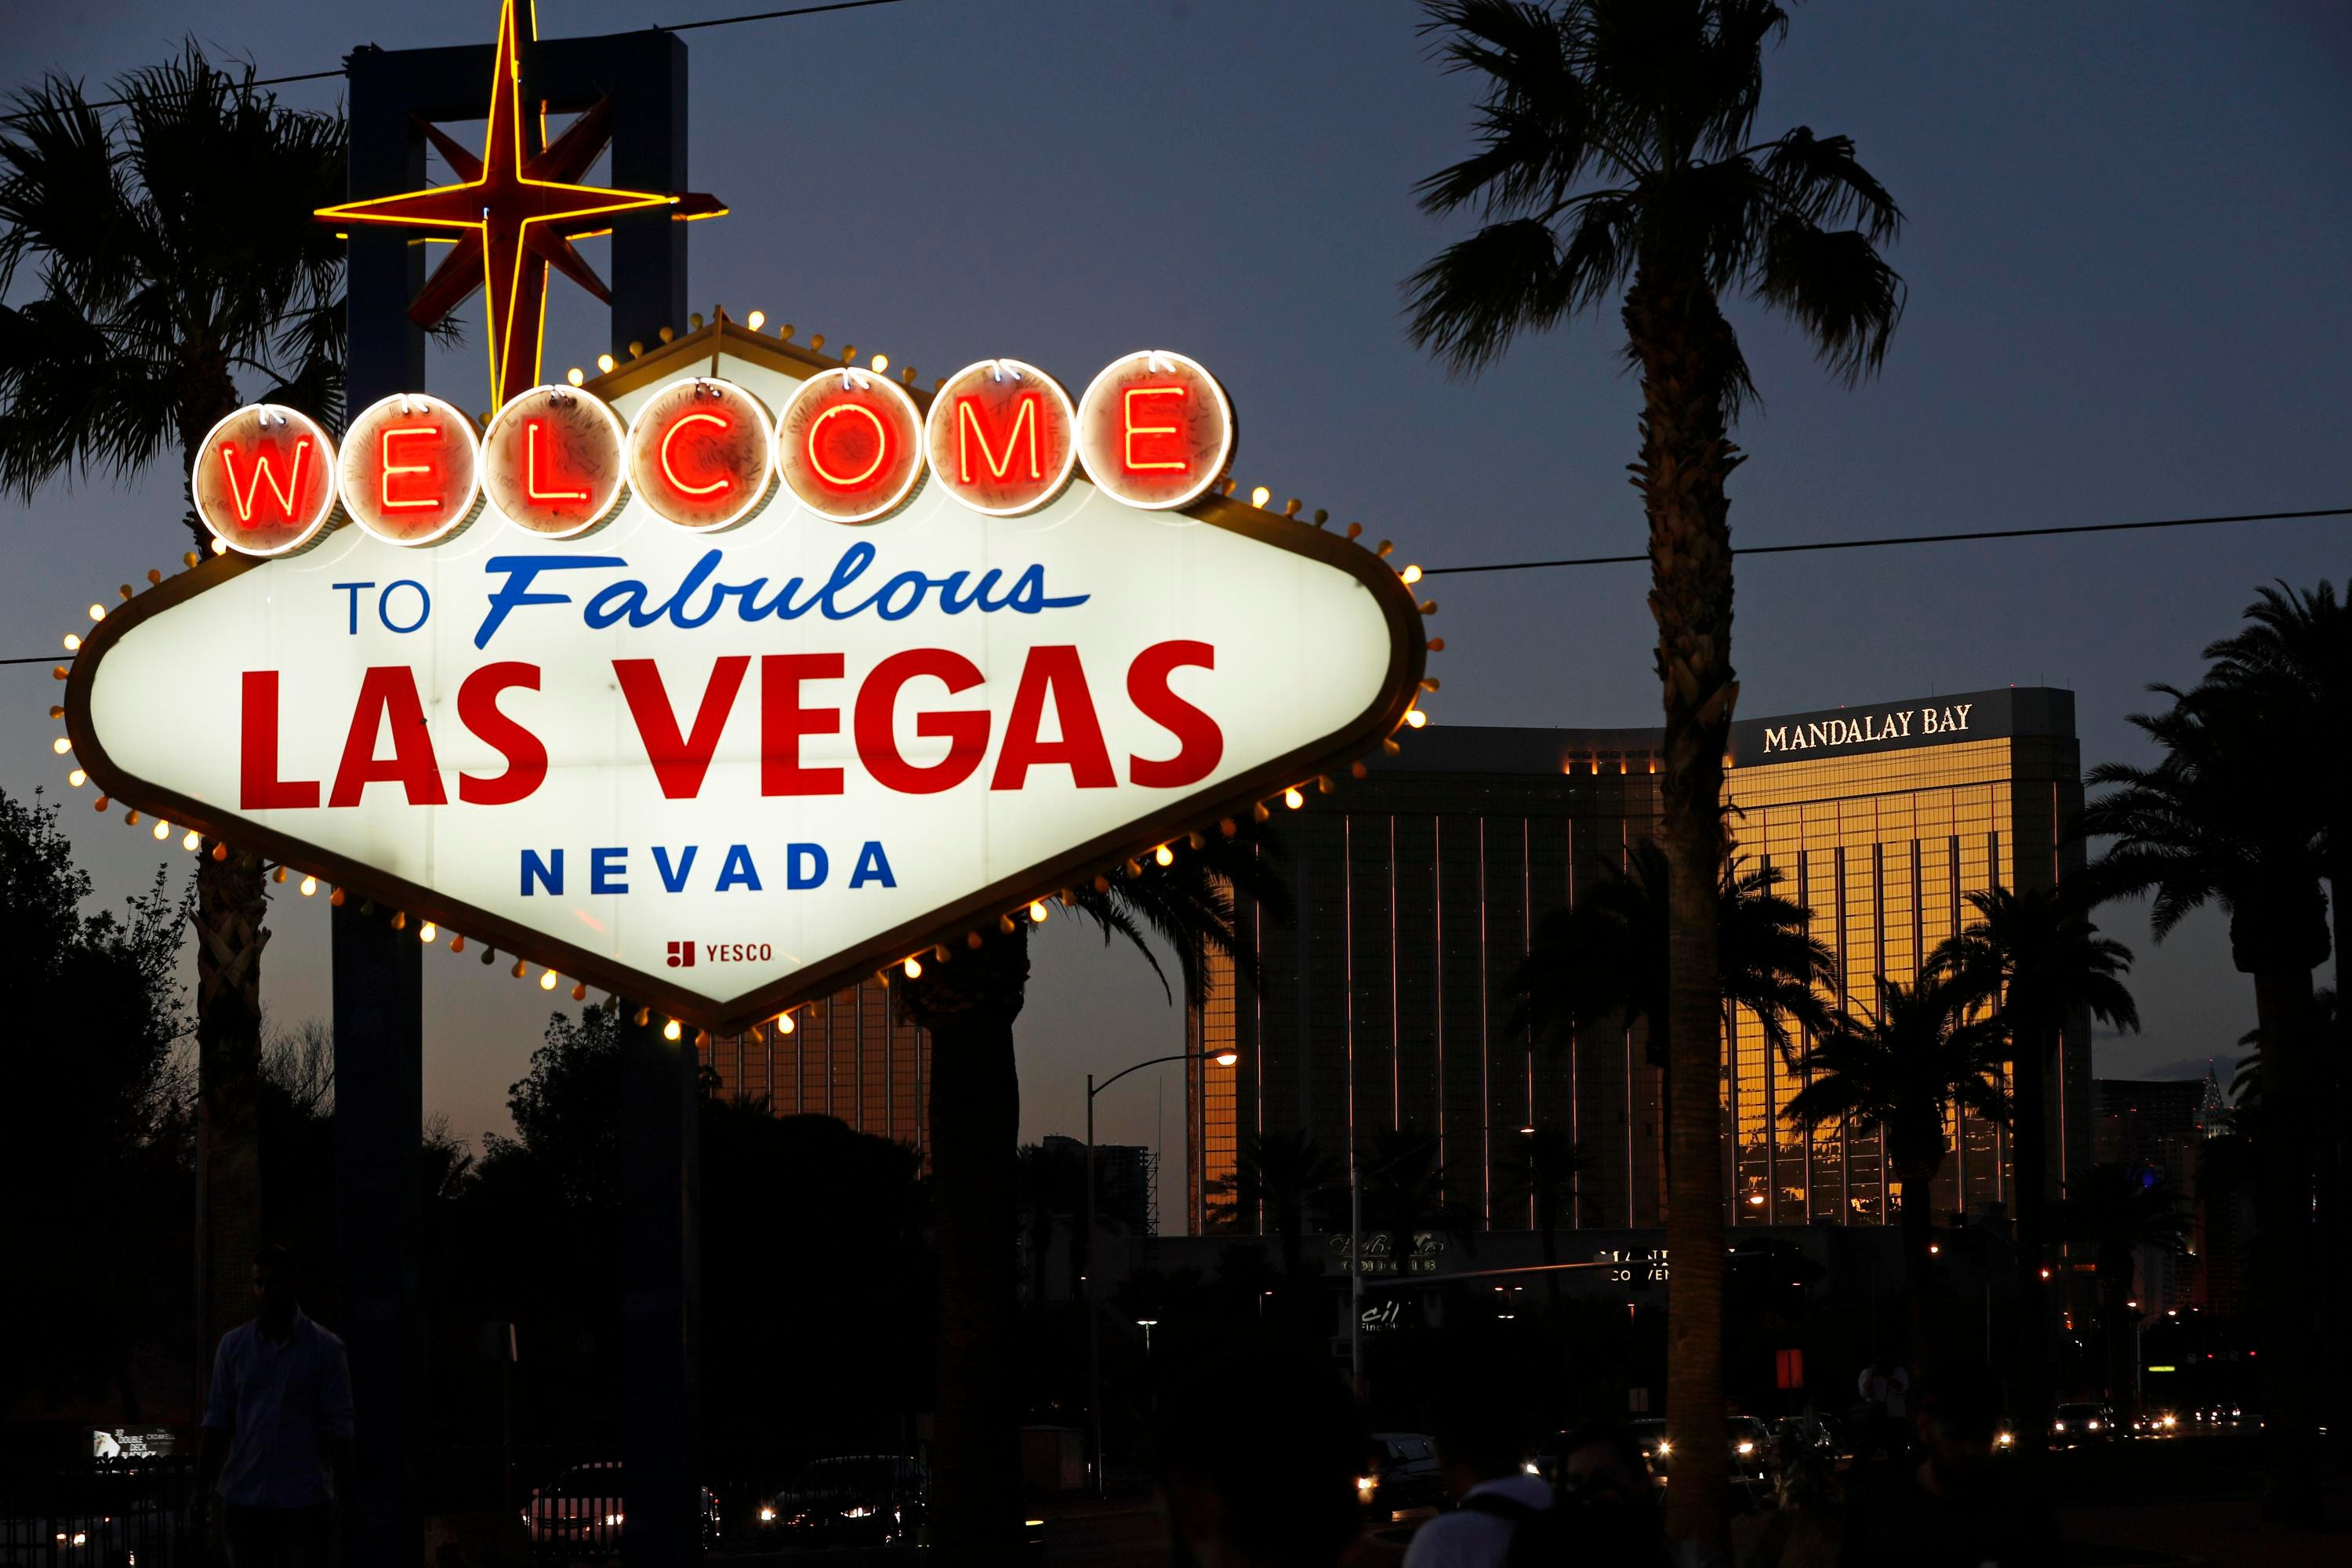 Nevada health officials ask people to mask up in Las Vegas casinos, other indoor spaces